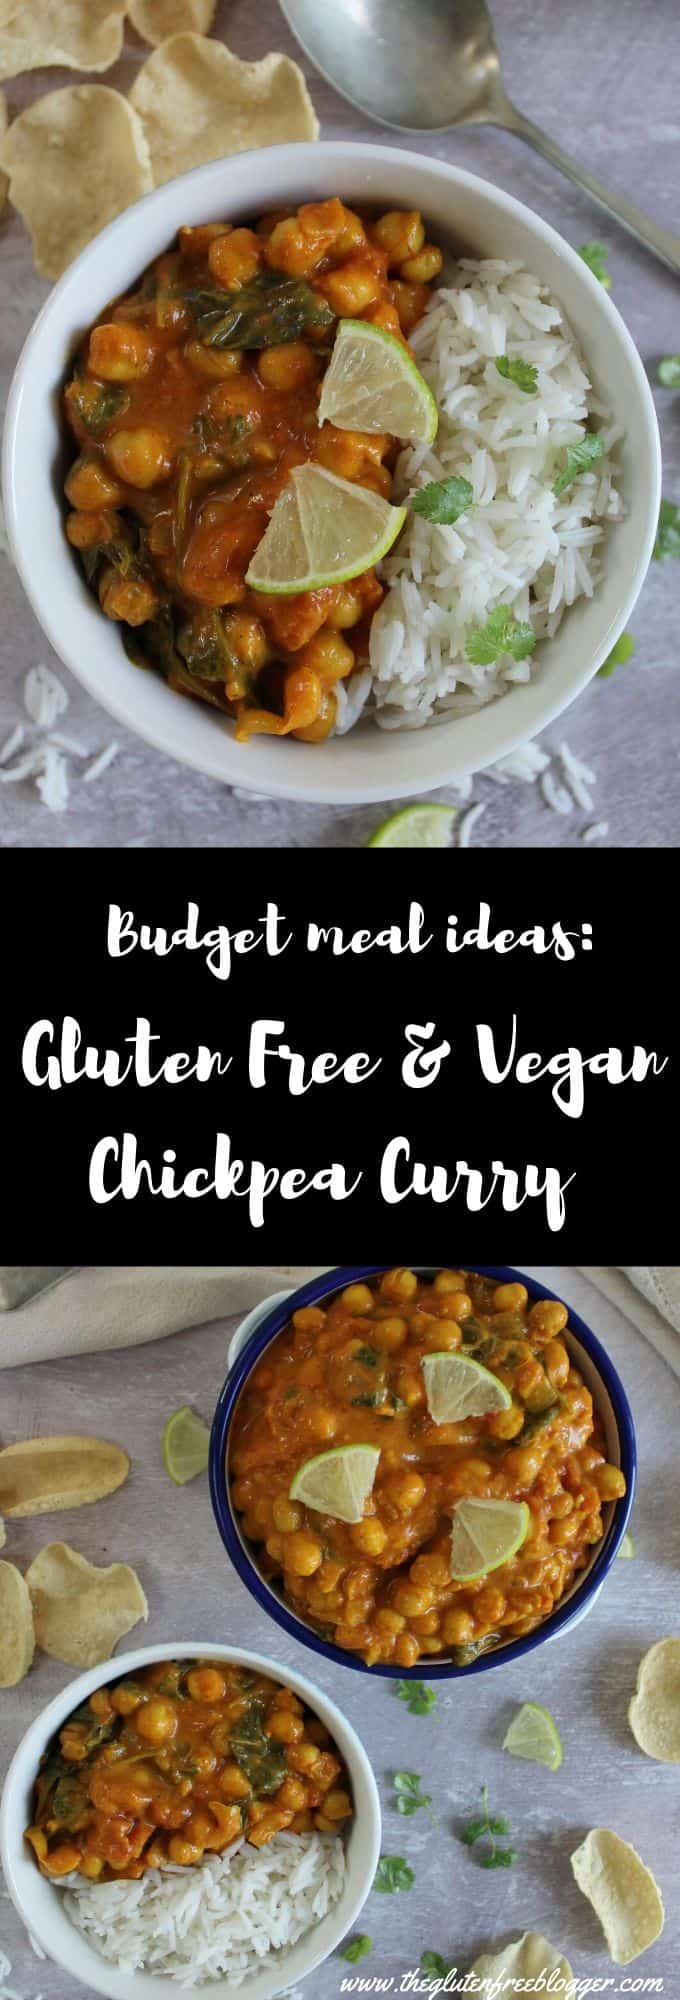 gluten free and vegan chickpea curry recipe easy budget meal ideas coeliac celiac veganuary cheap dinner